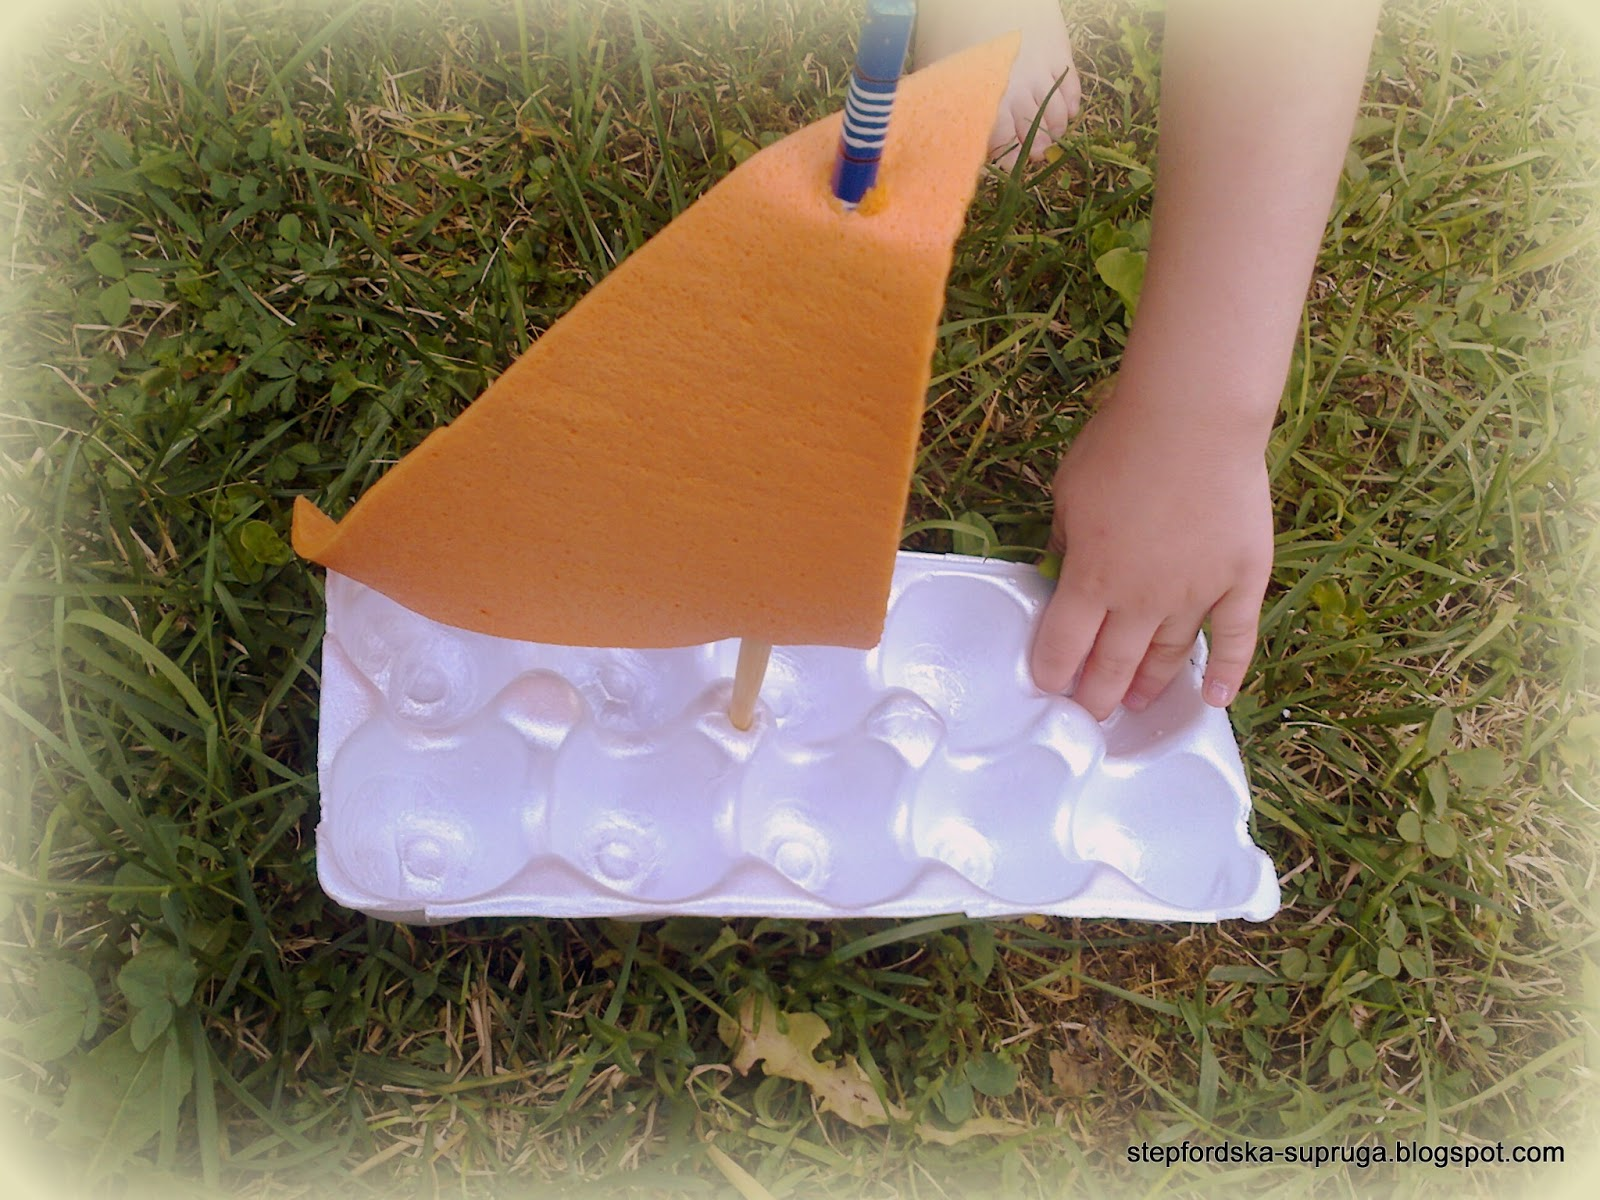 The Stepford wife: How to make a toy boat